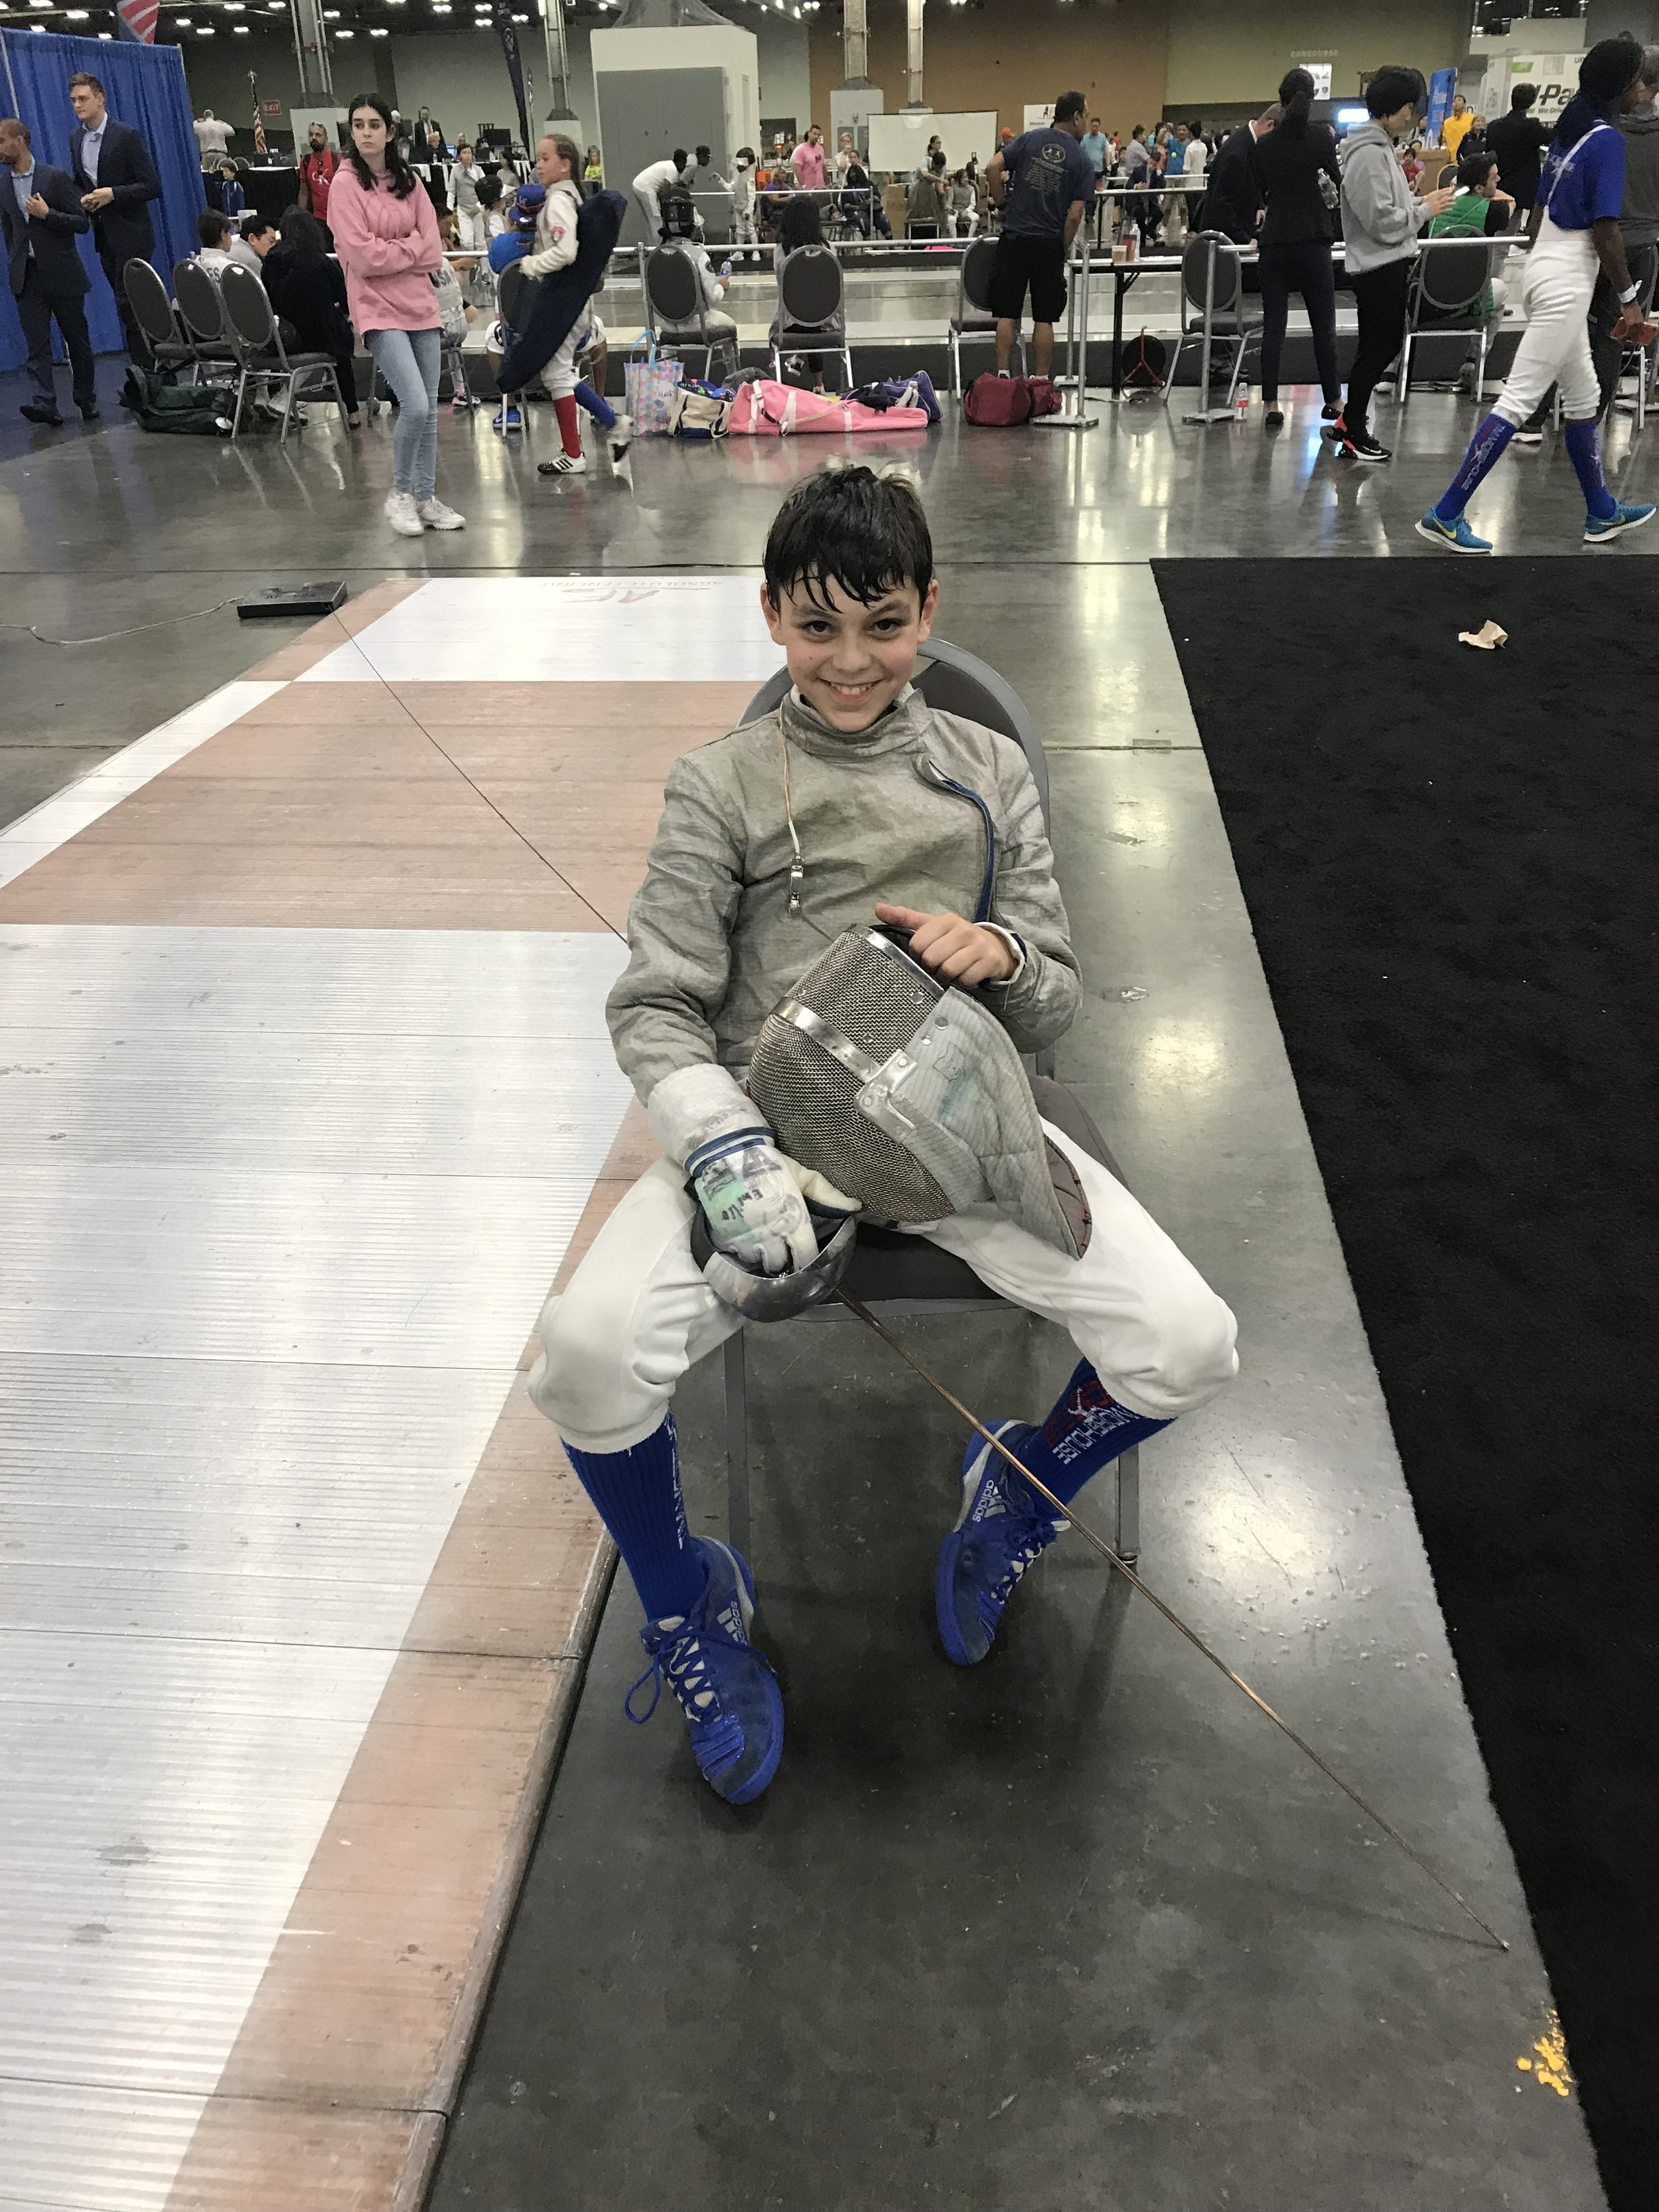 Fencing Lessons, Fencing Classes, Youth Sports, Fencing